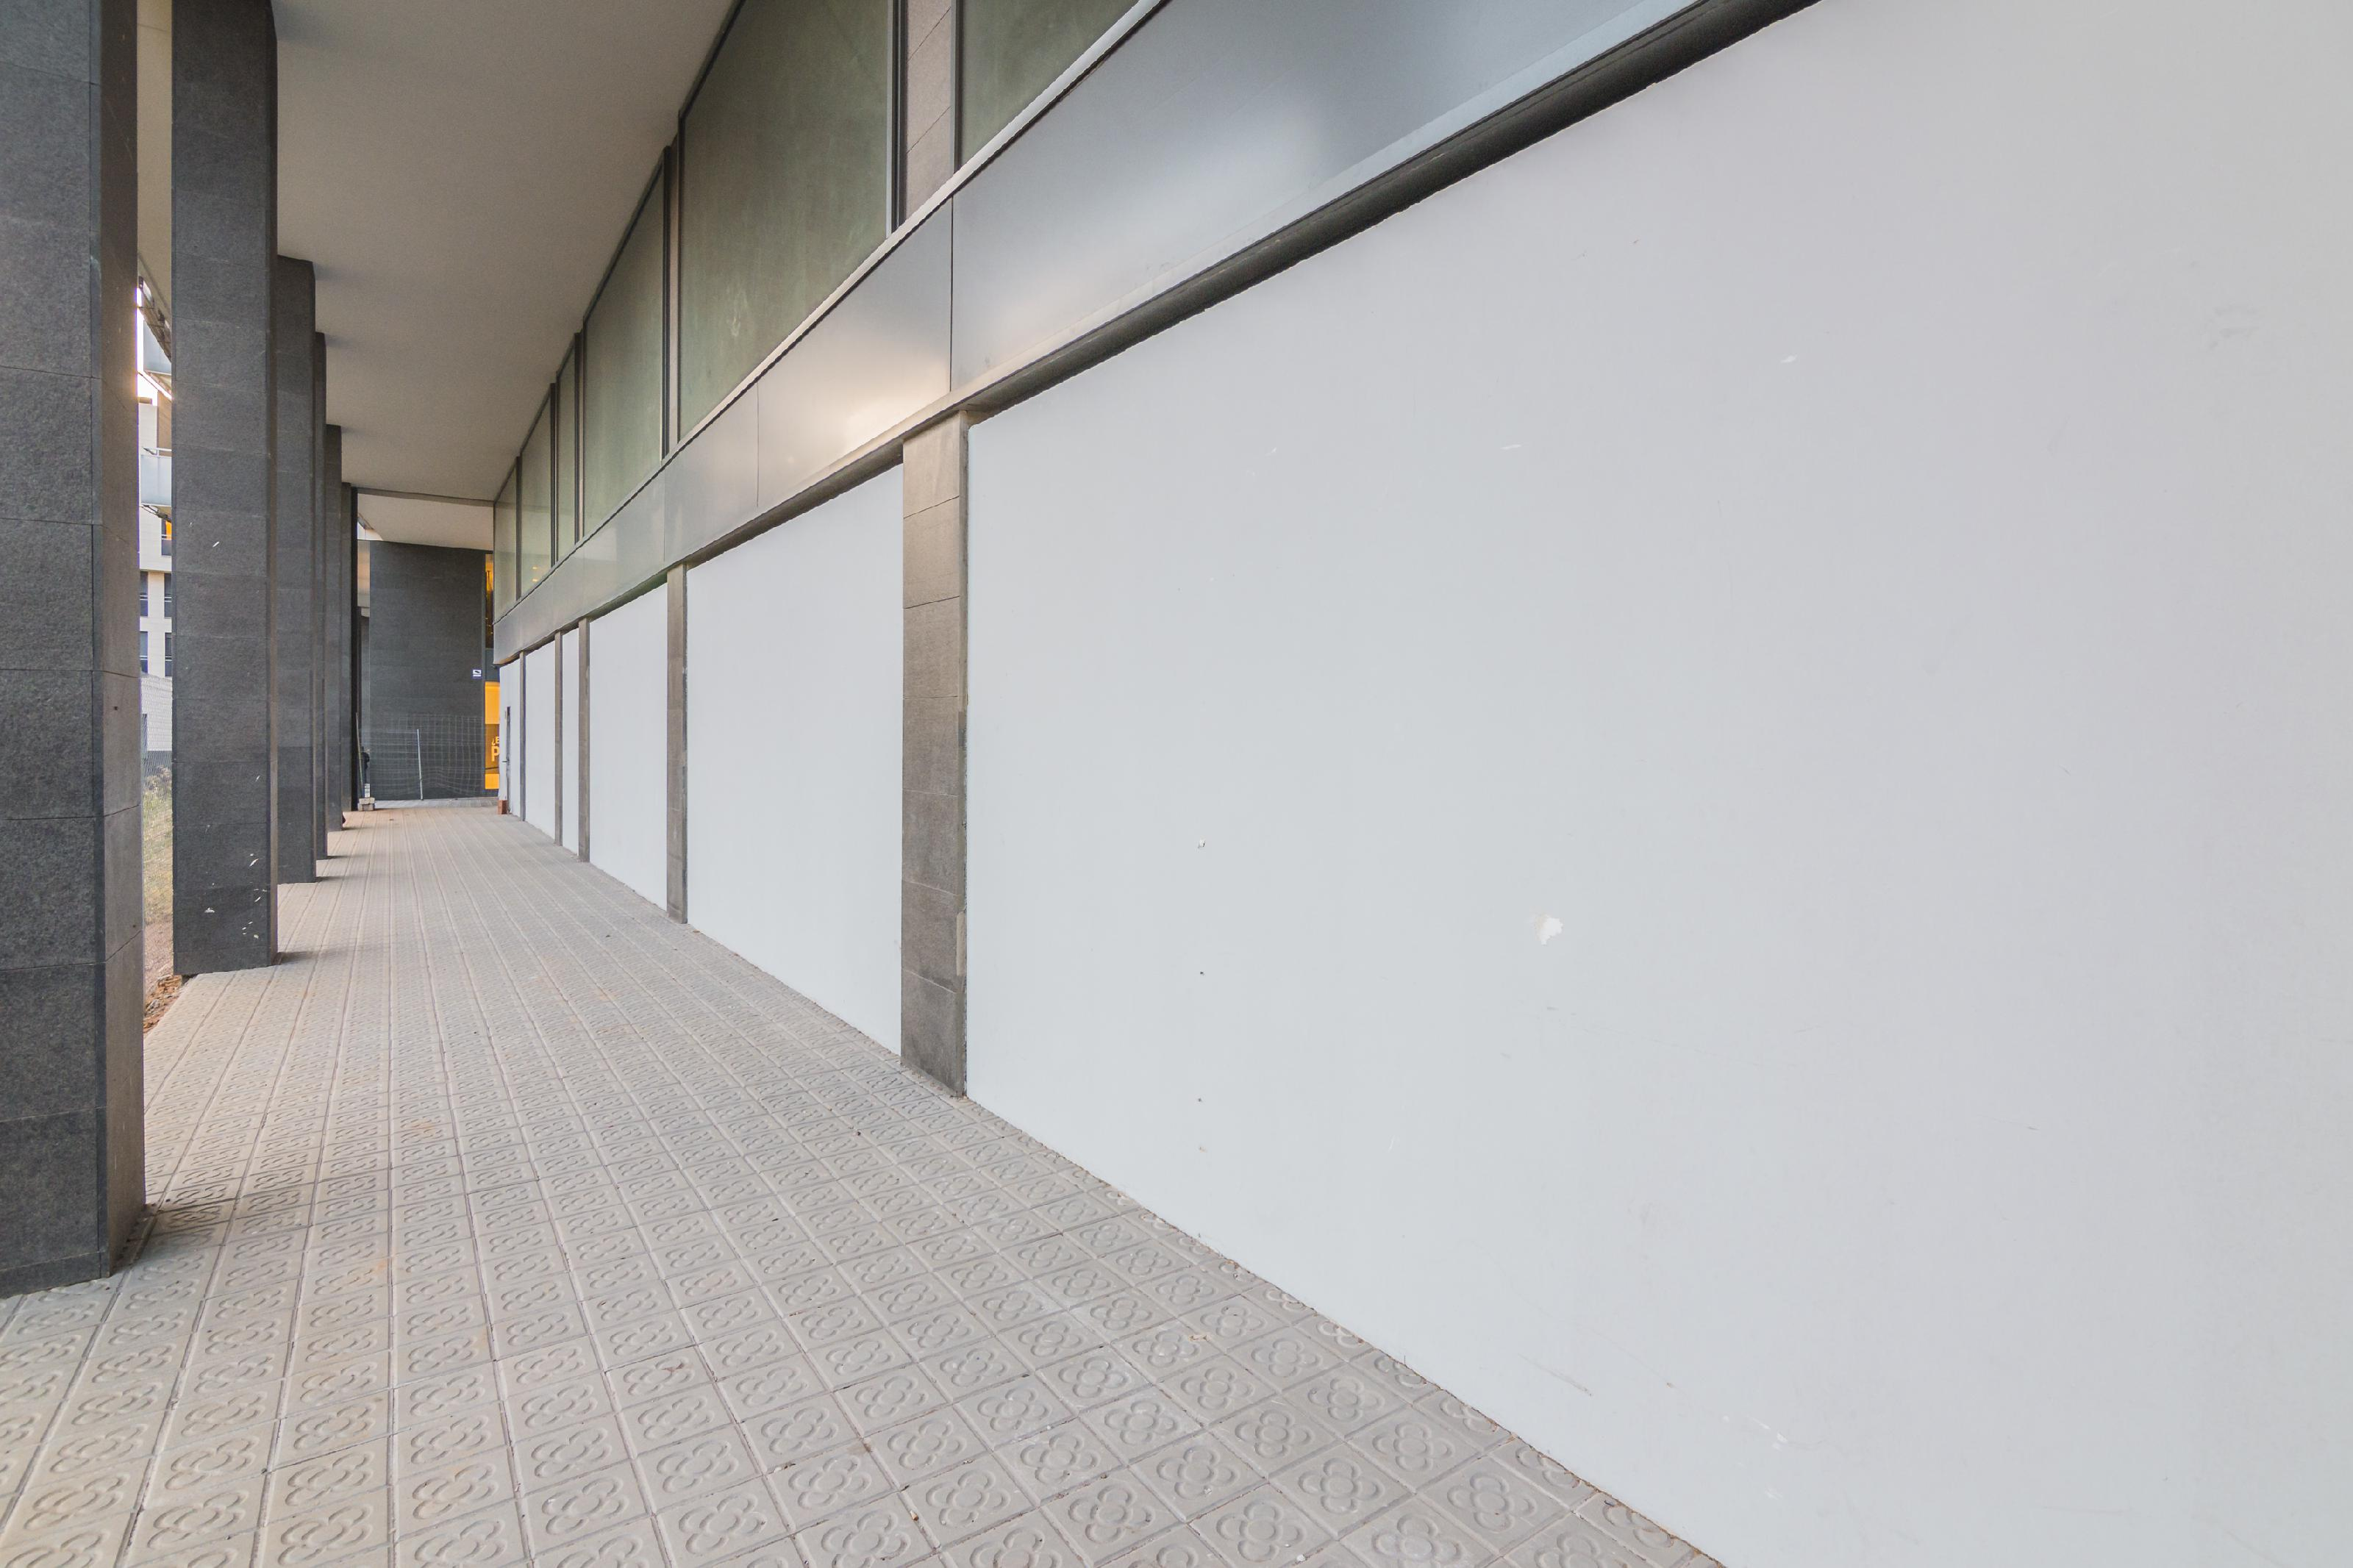 217942 Commercial Premises for sale in Les Corts, Les Corts 4